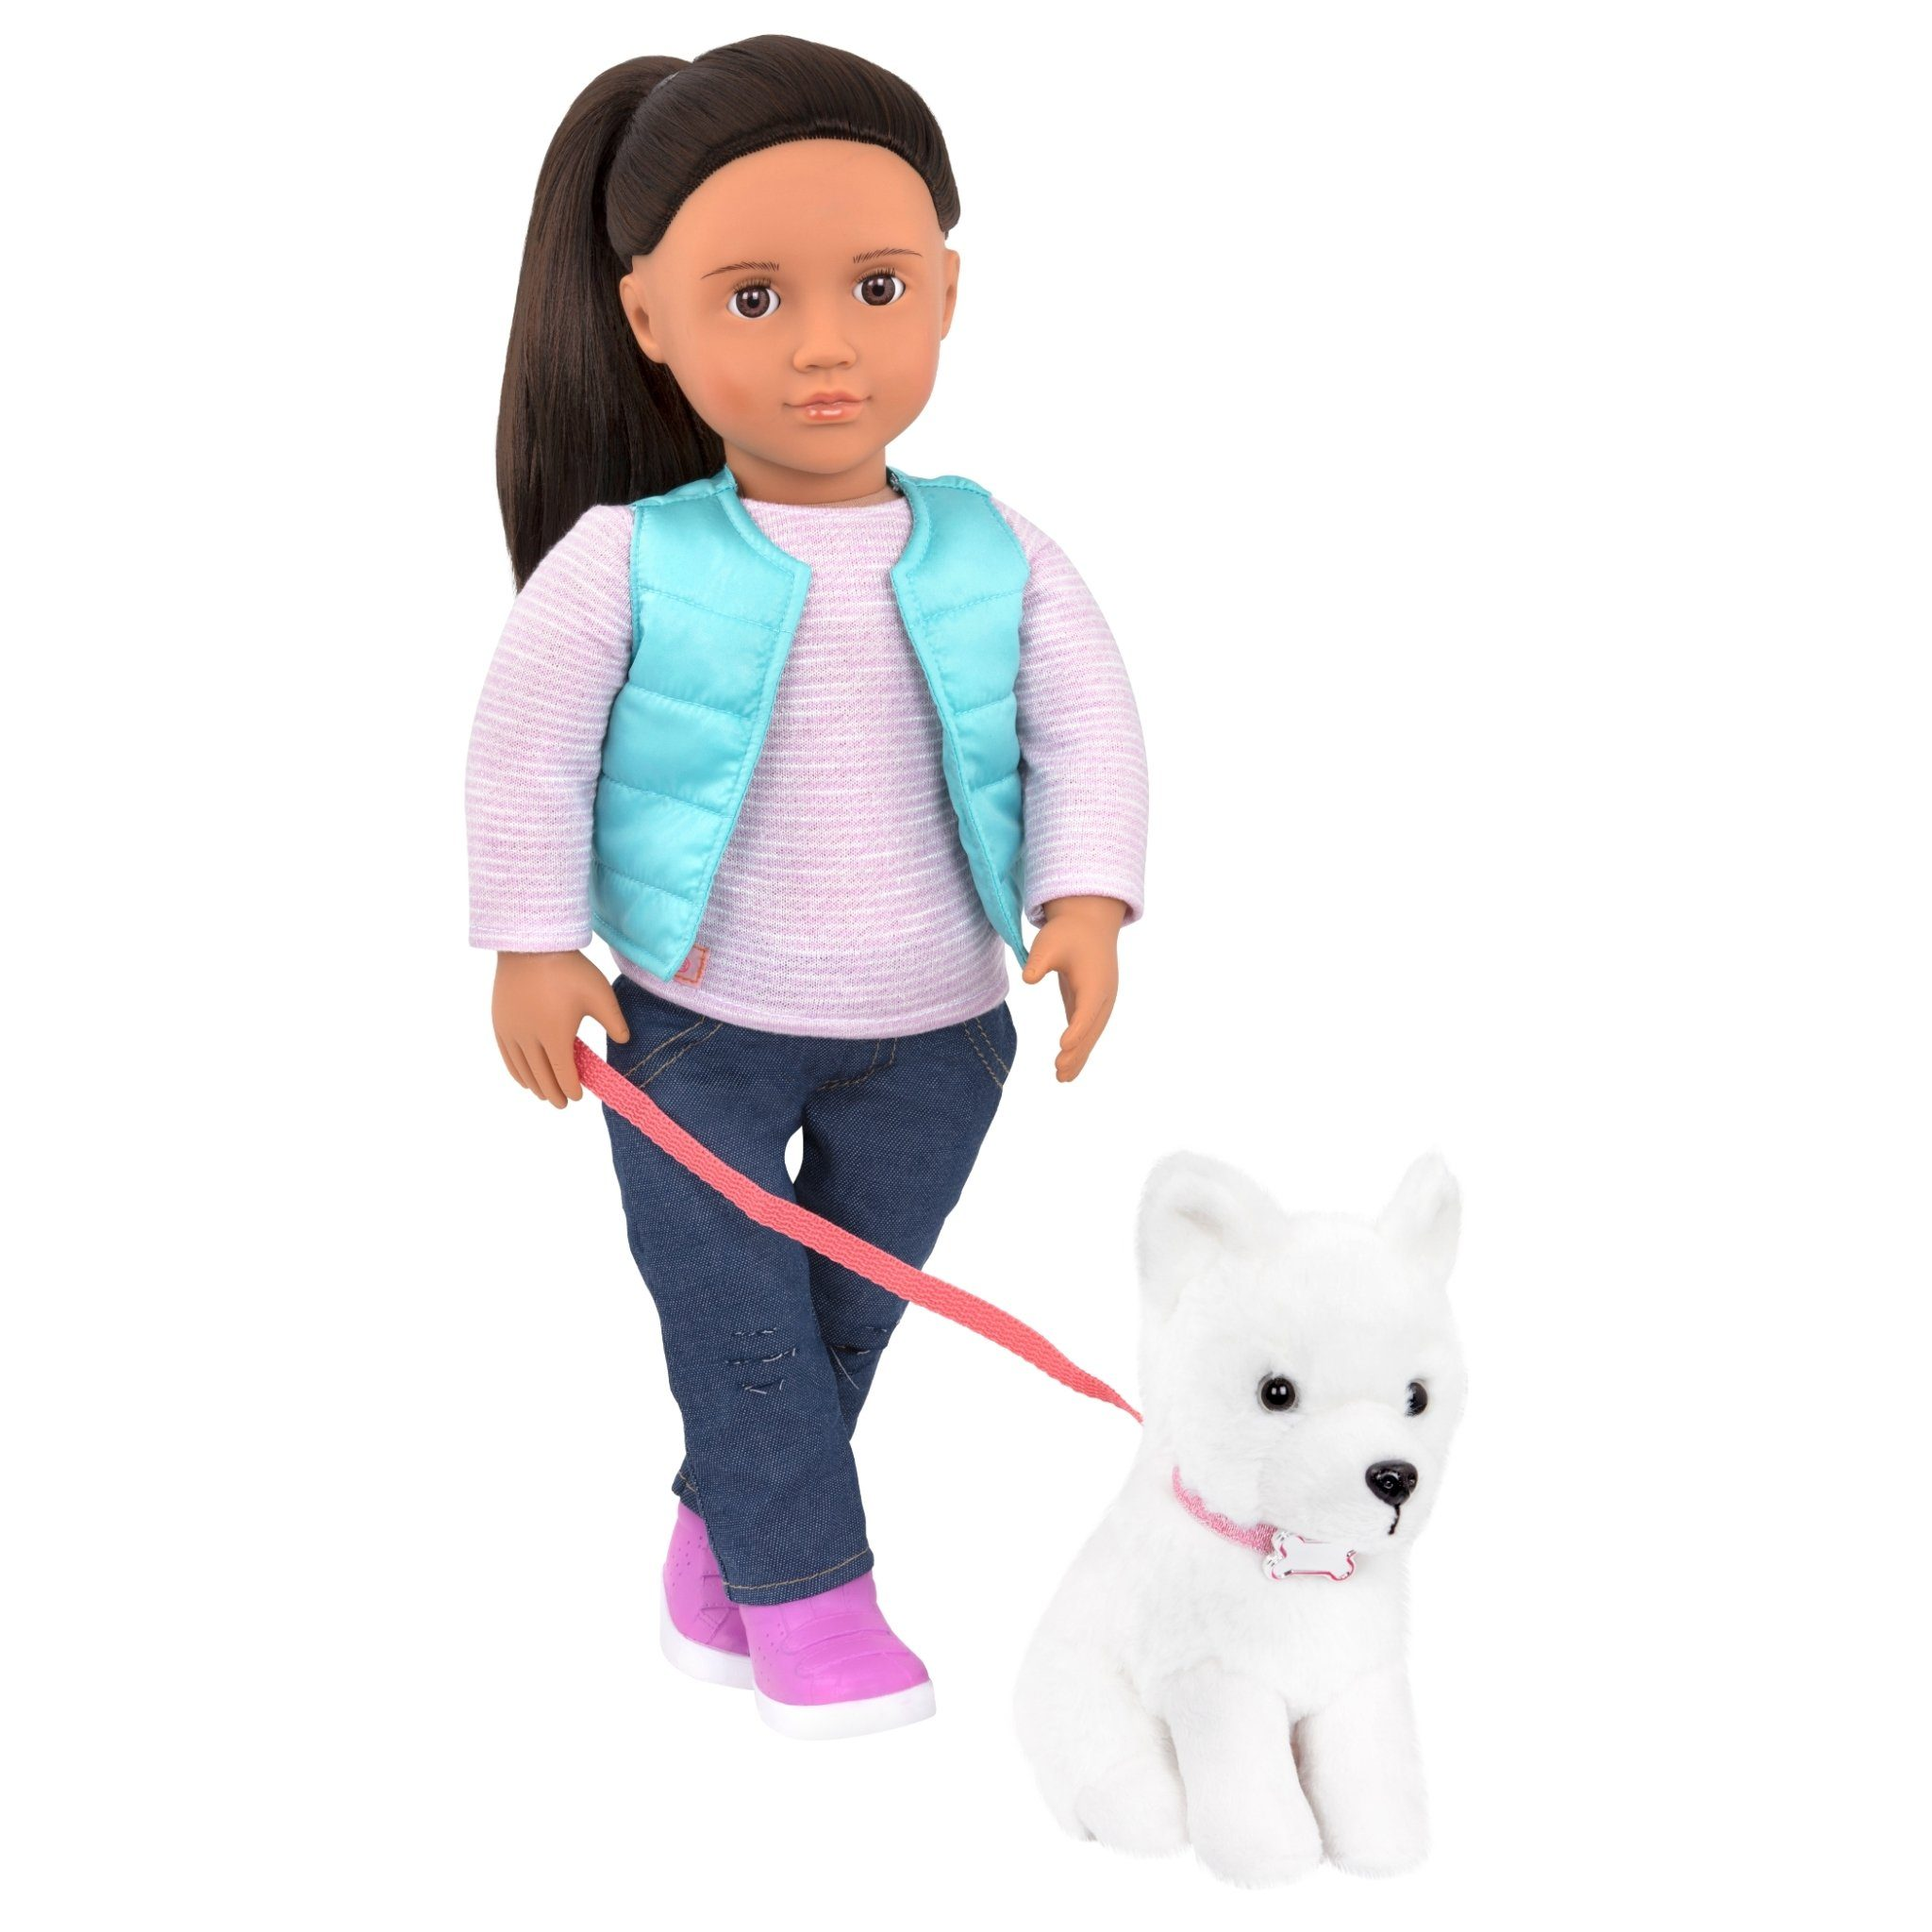 Our Generation Dolls Cassie and Pet Dog Samoyed BD31243Z - TOYBOX Toy Shop